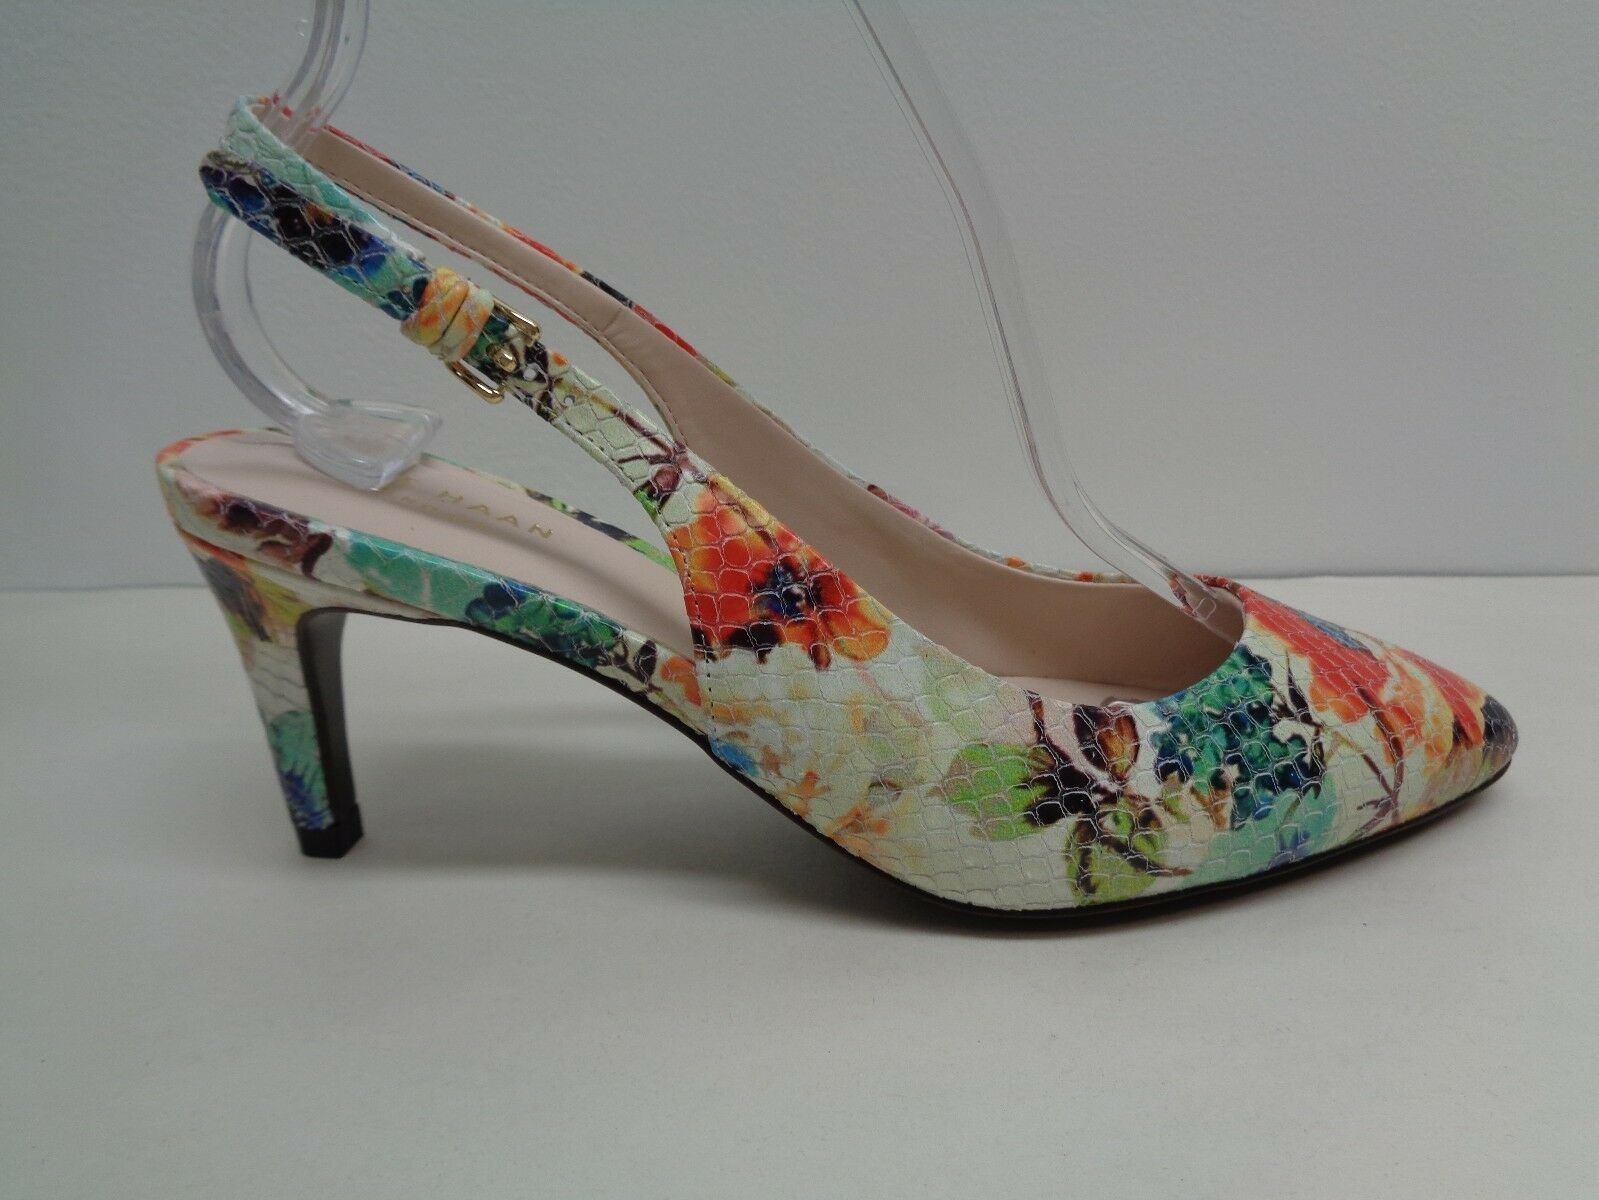 Cole Haan Size 6.5 MEDORA Floral Leather Sling Back Pumps Heels New Womens shoes